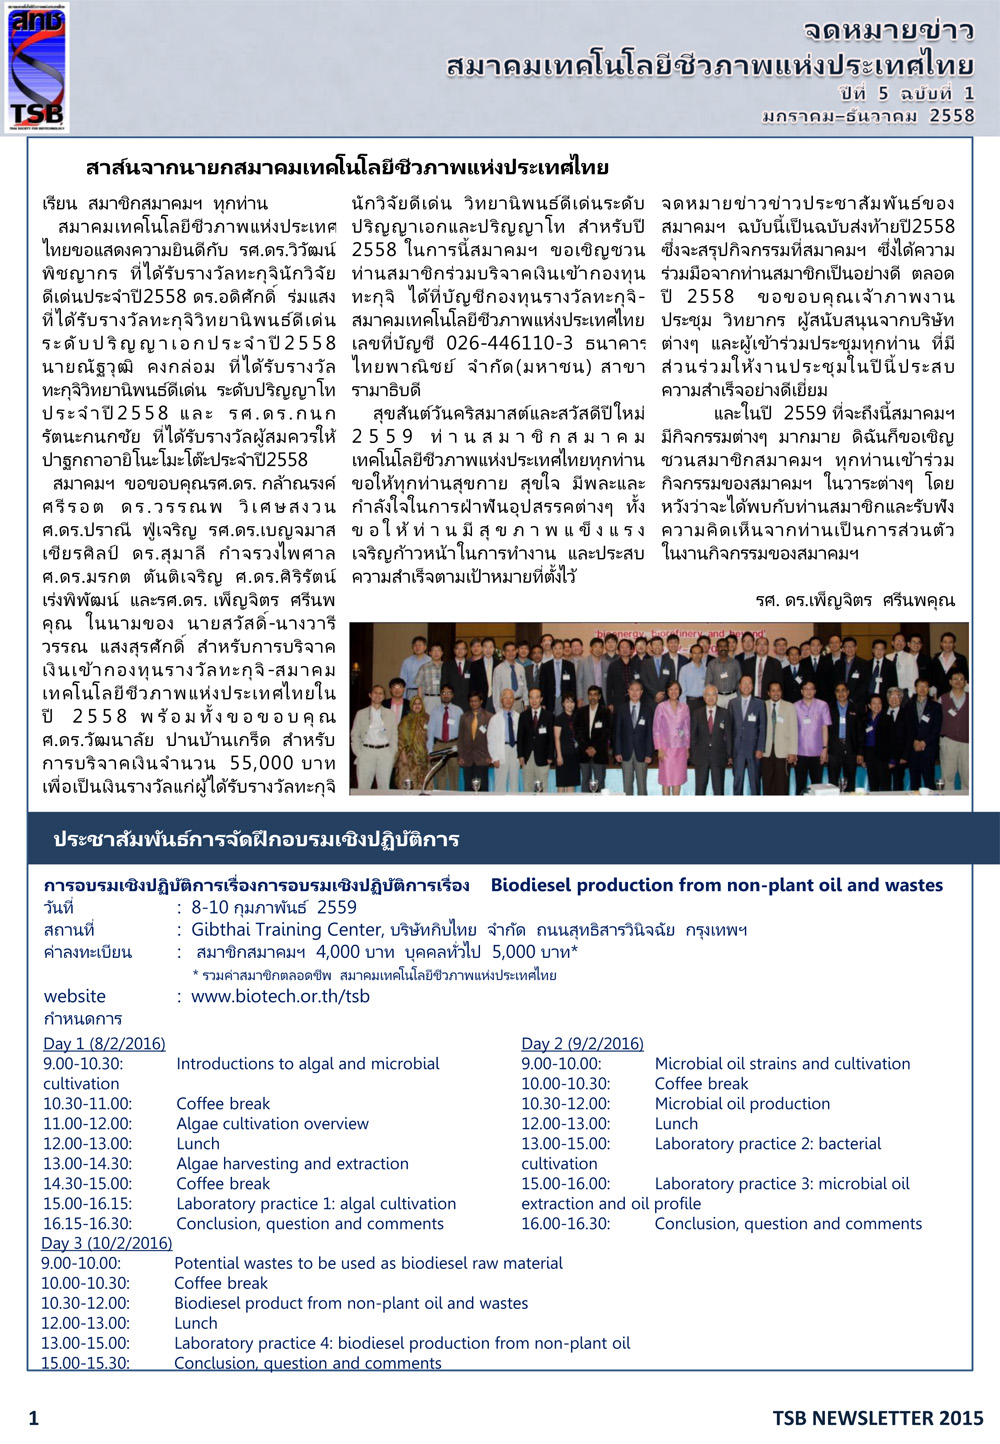 TSBNewsletterJan.-Dec.2015-1